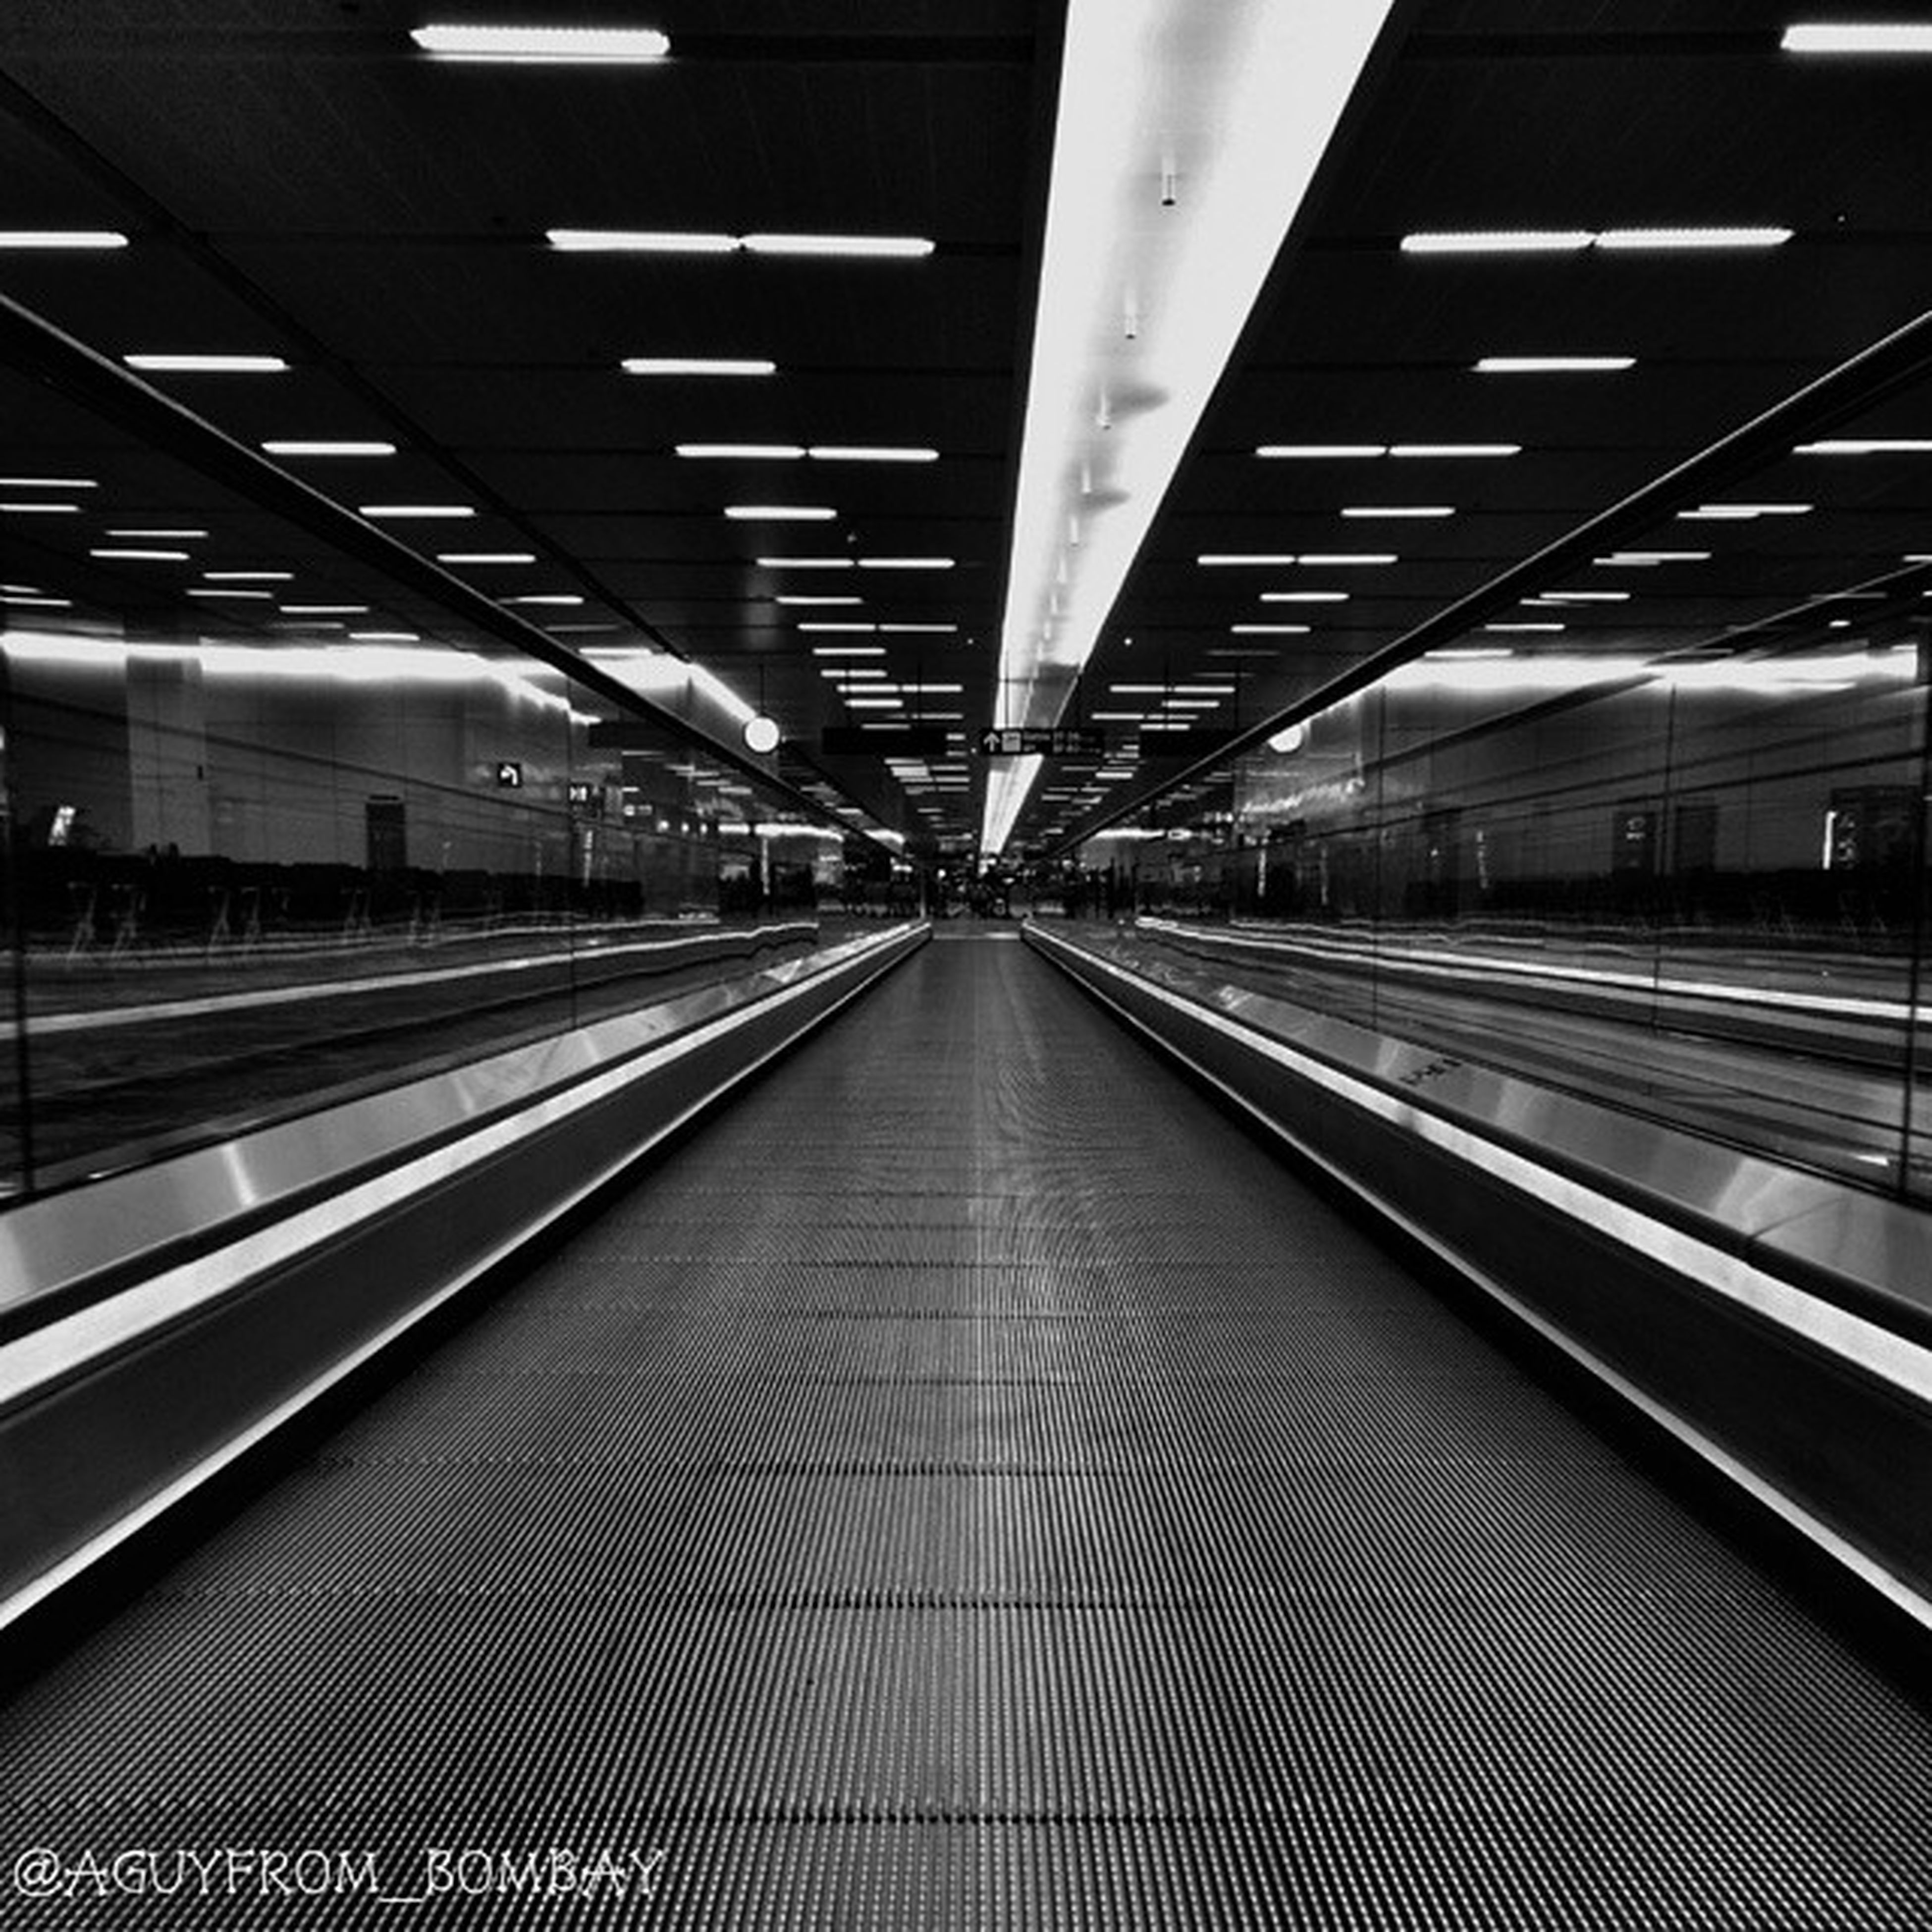 railroad track, rail transportation, diminishing perspective, indoors, transportation, the way forward, illuminated, railroad station, railroad station platform, vanishing point, public transportation, ceiling, subway station, built structure, empty, subway, architecture, long, lighting equipment, railway track